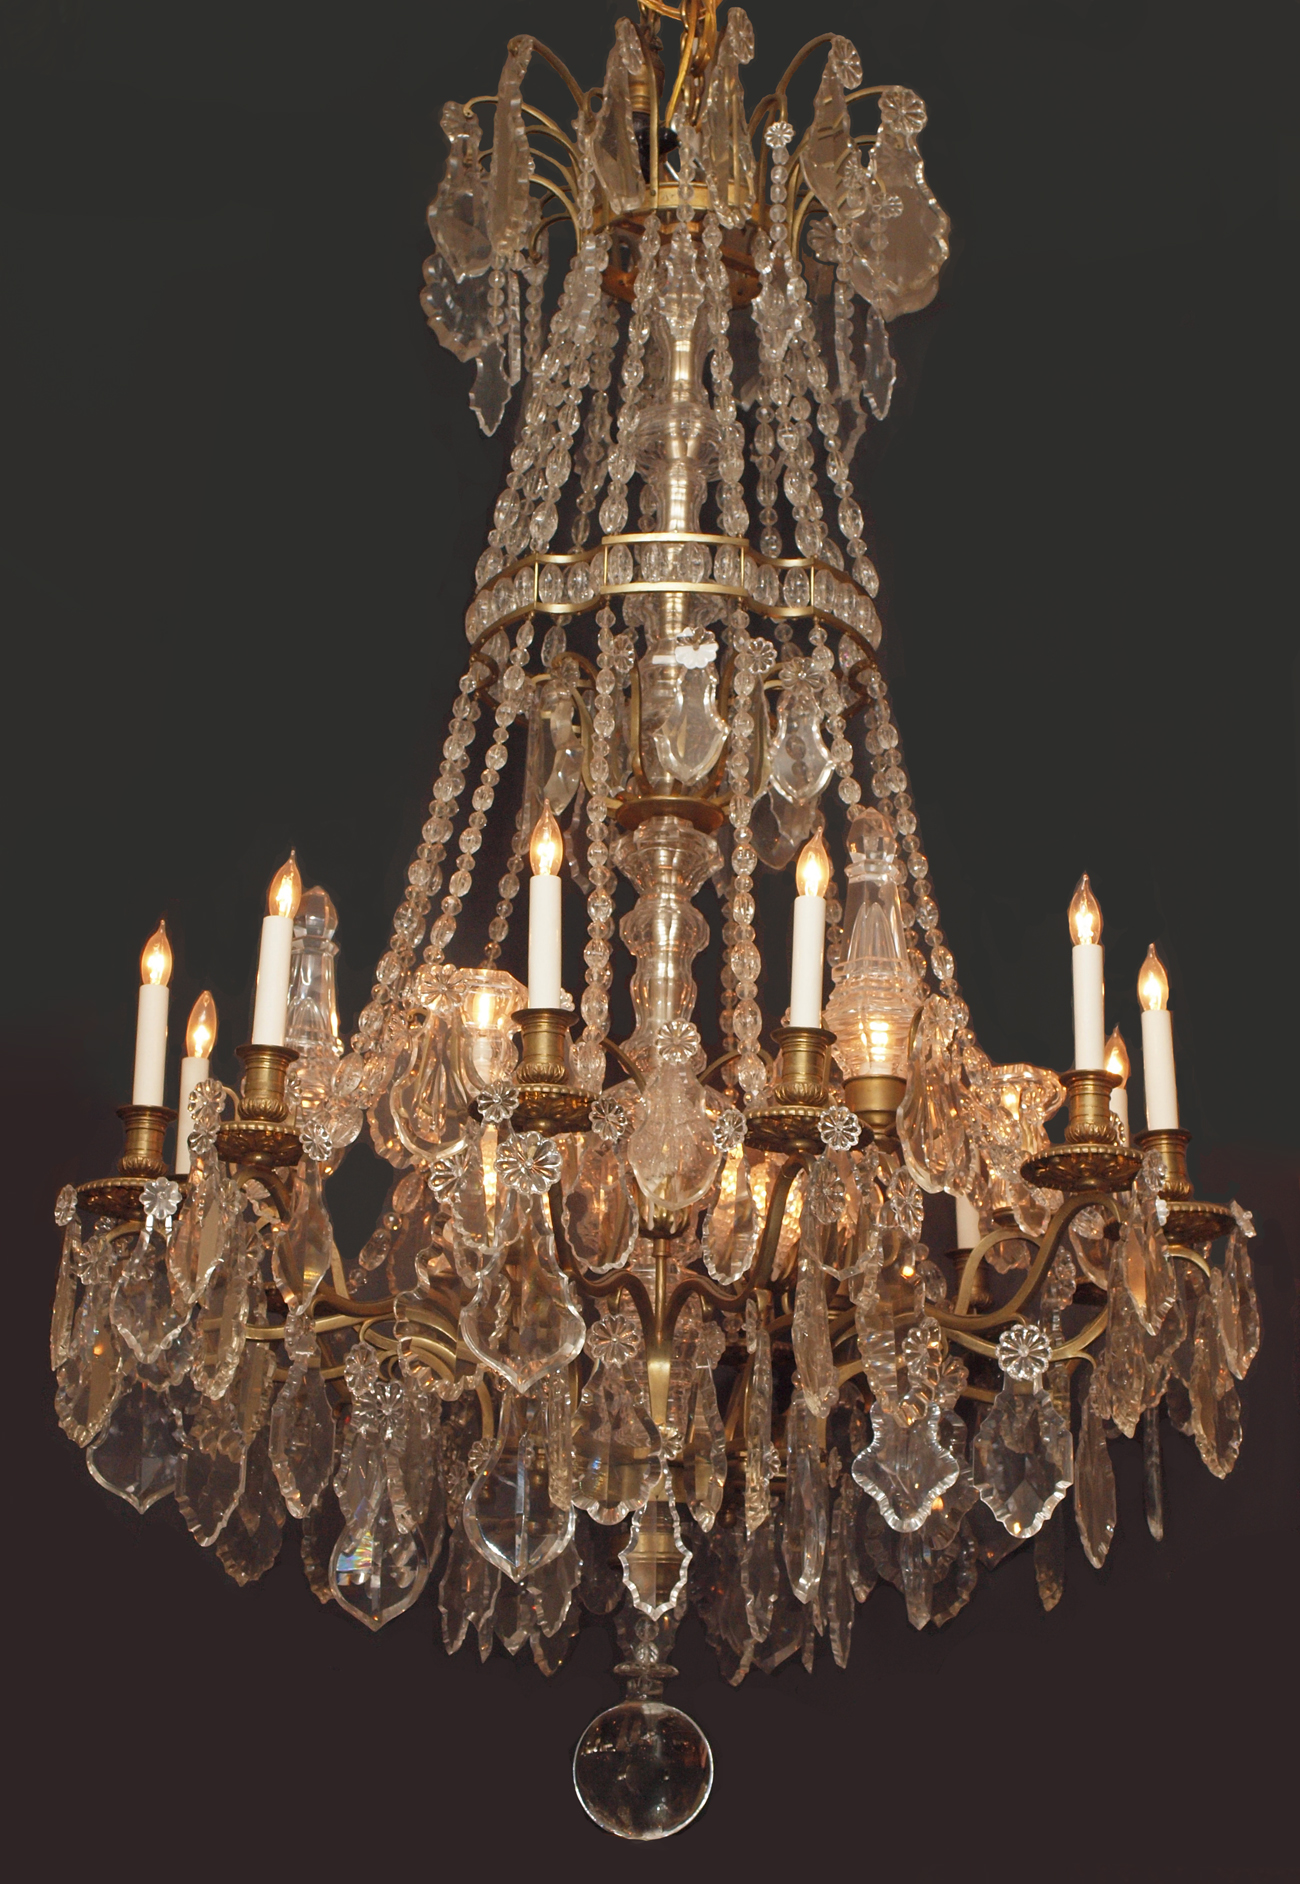 Antique french louis xvi baccarat crystal chandelier chc118 for sale classifieds - Chandelier for sale ...